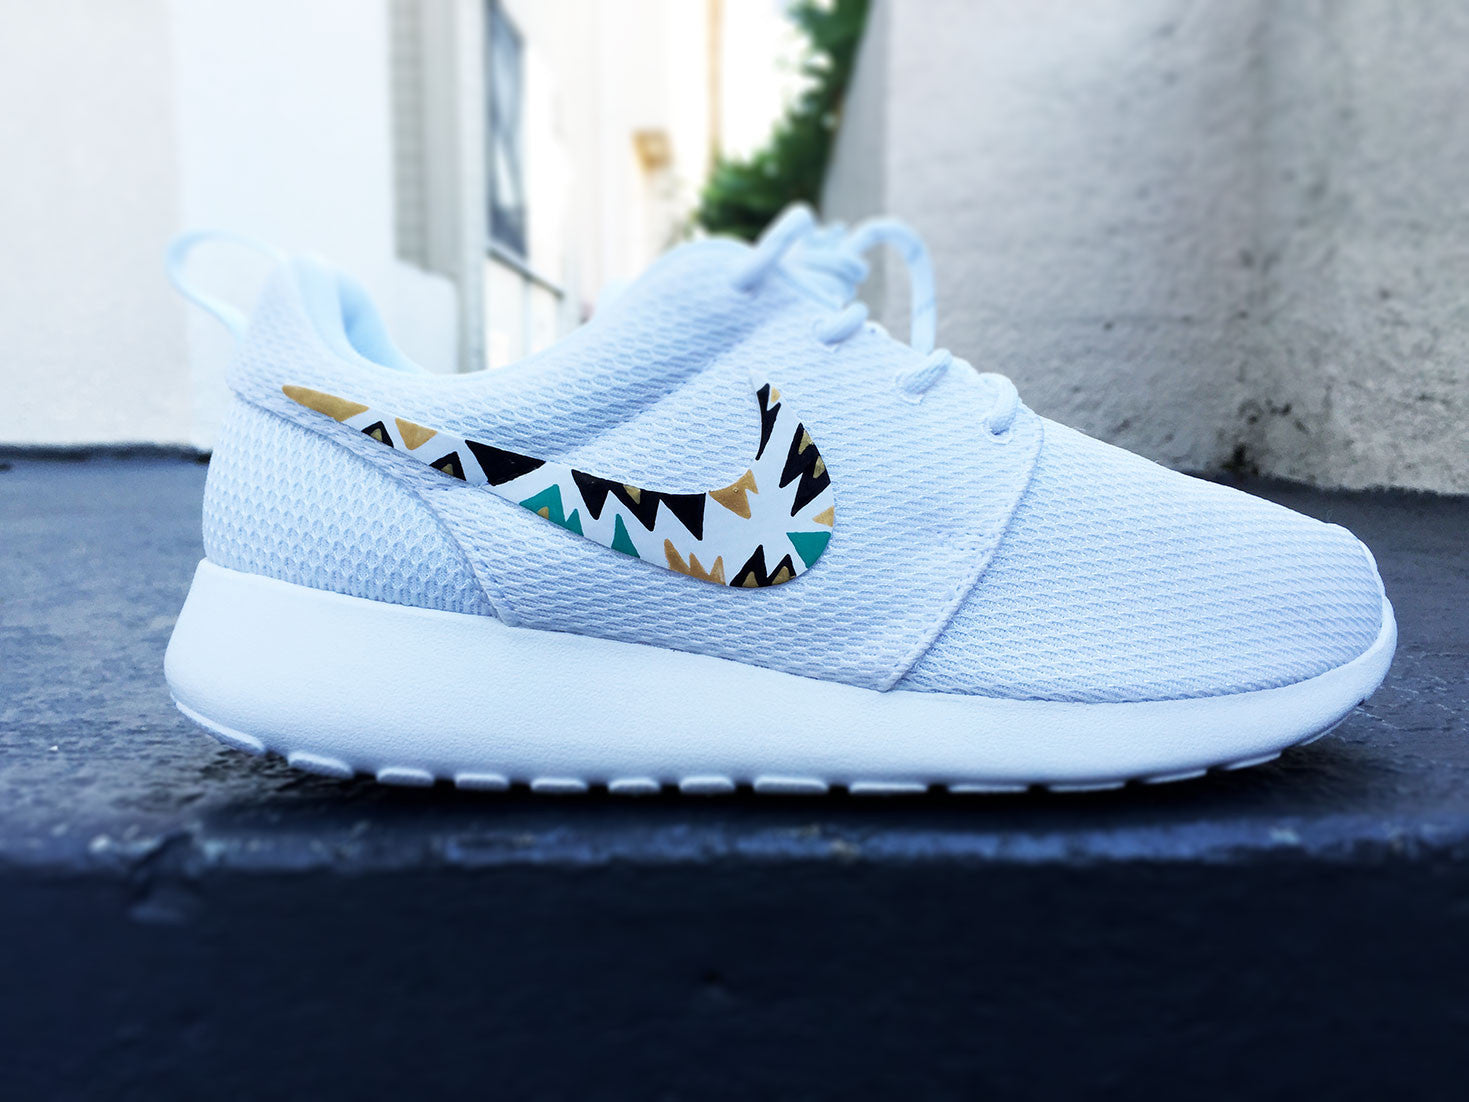 Custom Nike Roshe Run sneakers for women, All white, Black and Gold,  Silver, tribal, triangle design, fashionable design